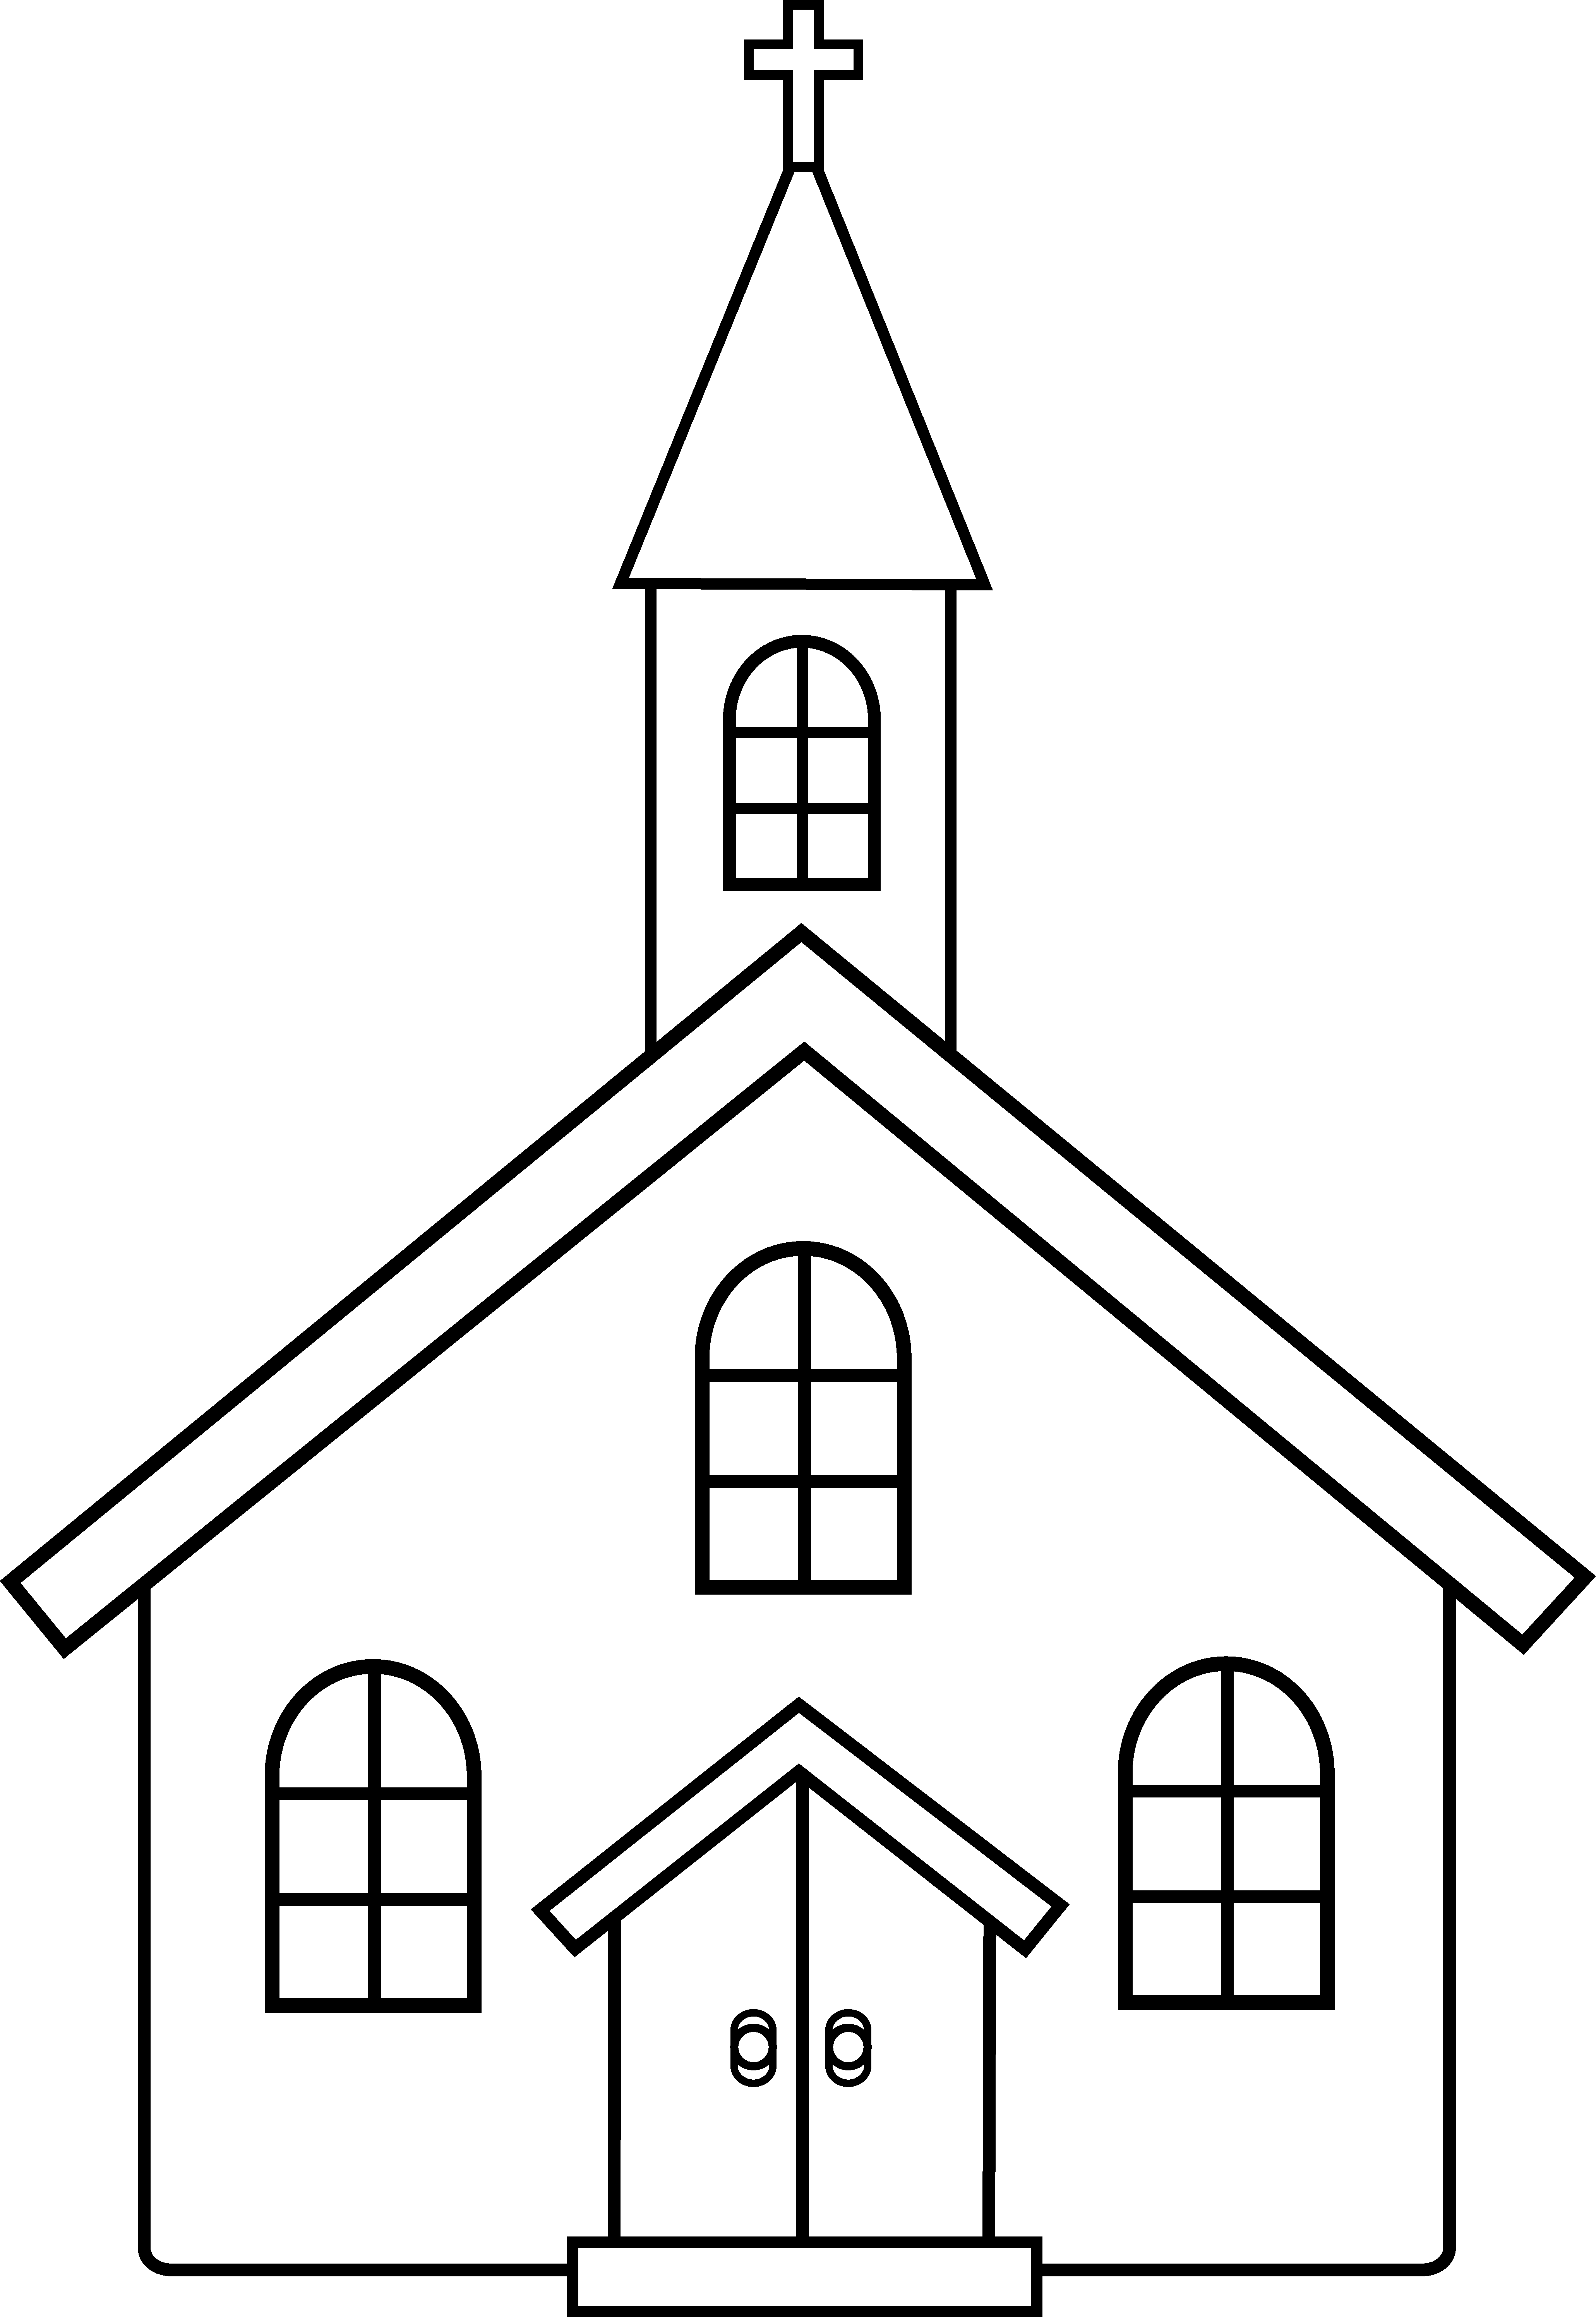 Church Line Art Church images, Coloring pages, Church